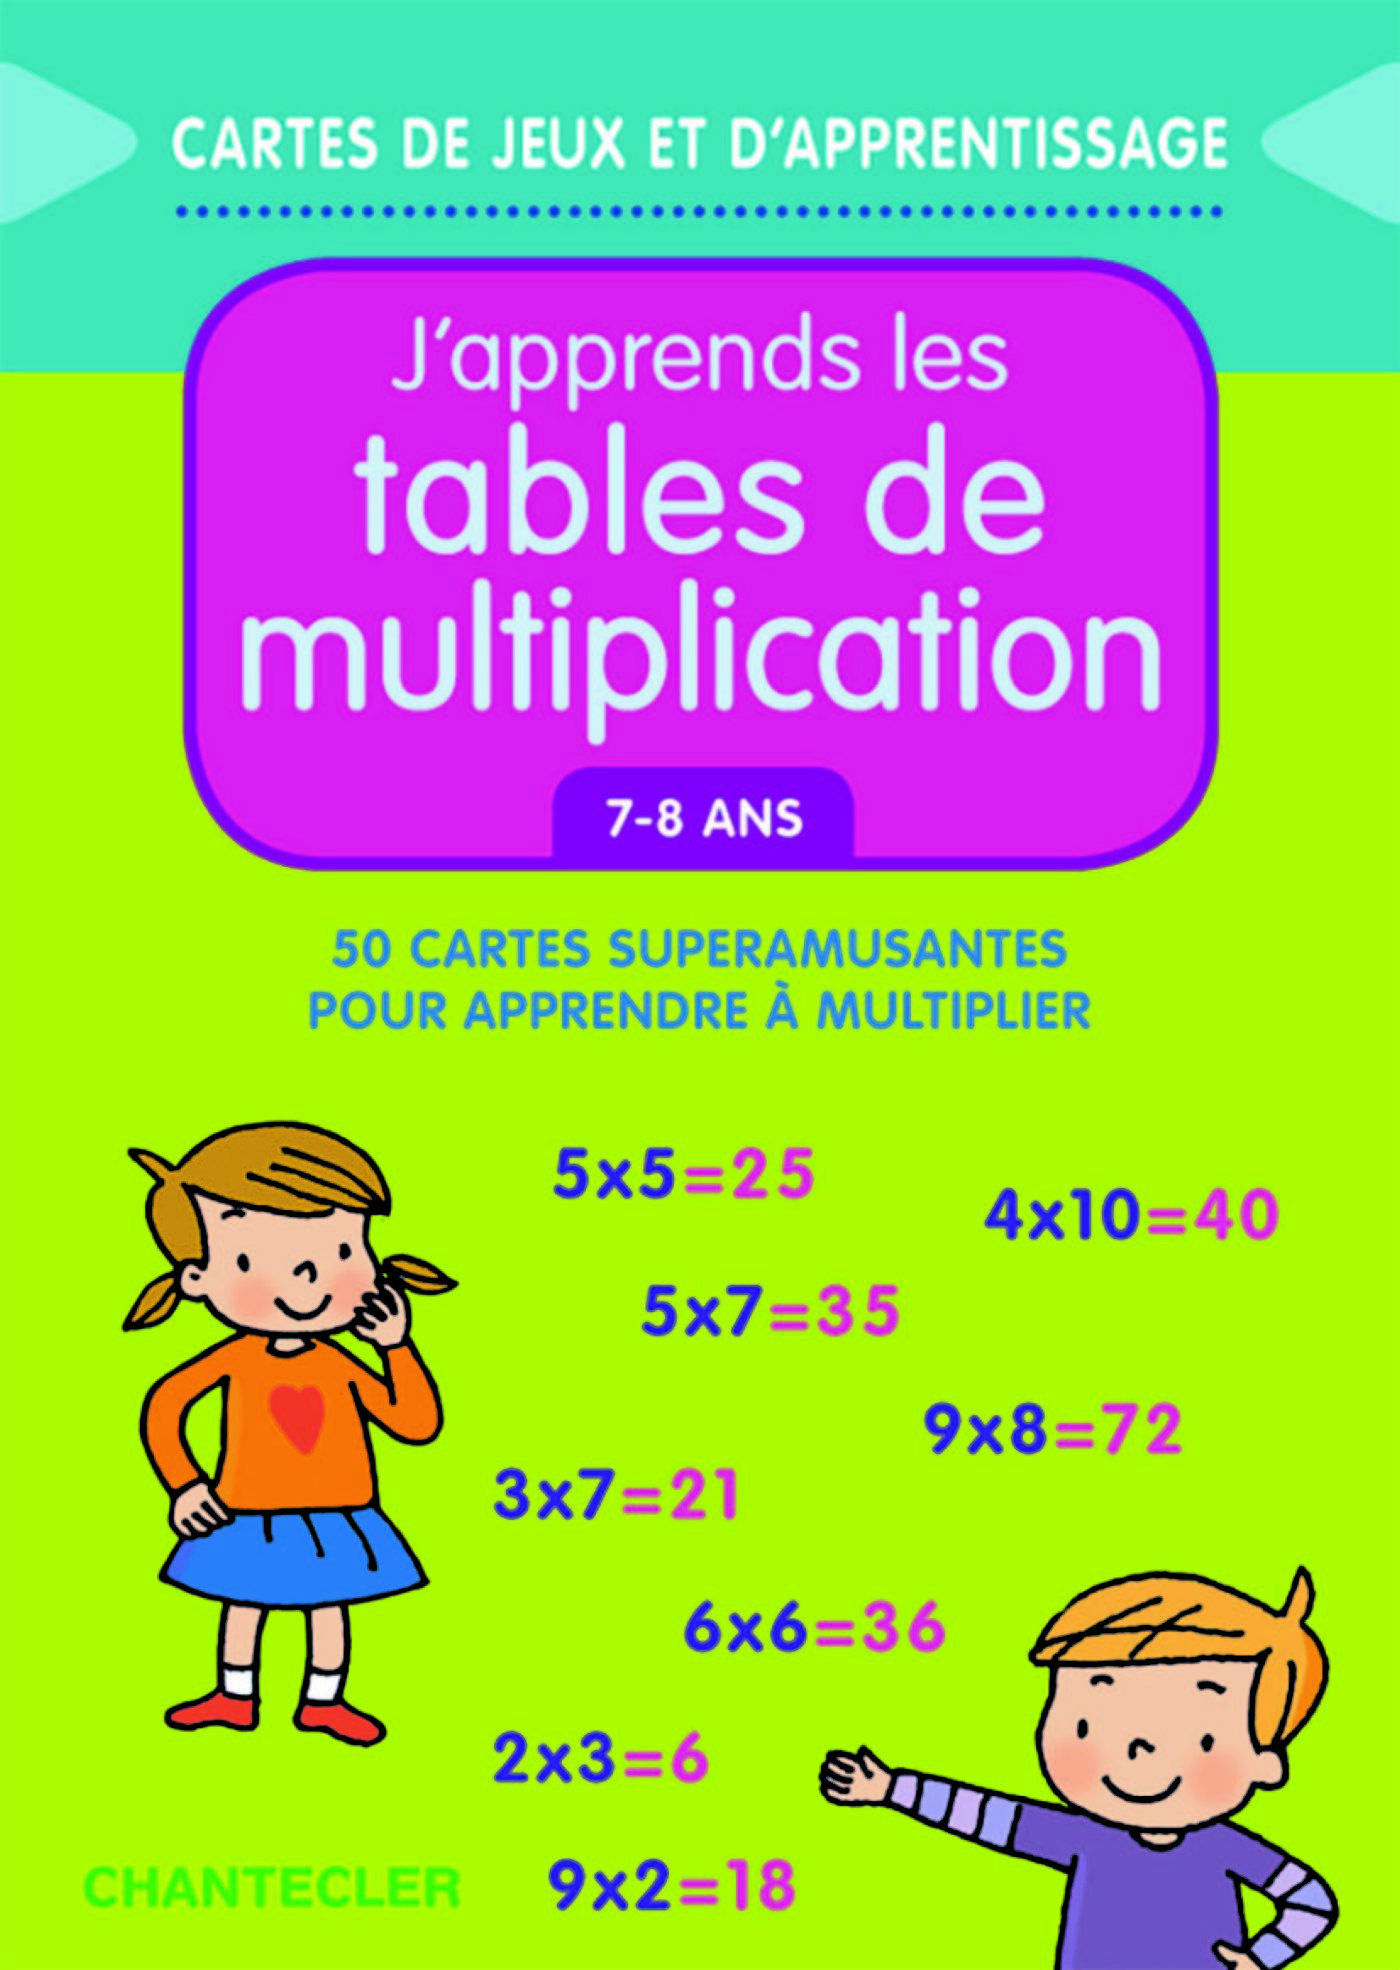 J'APPRENDS LES TABLES DE MULTIPLICATION (7-8 ANS)